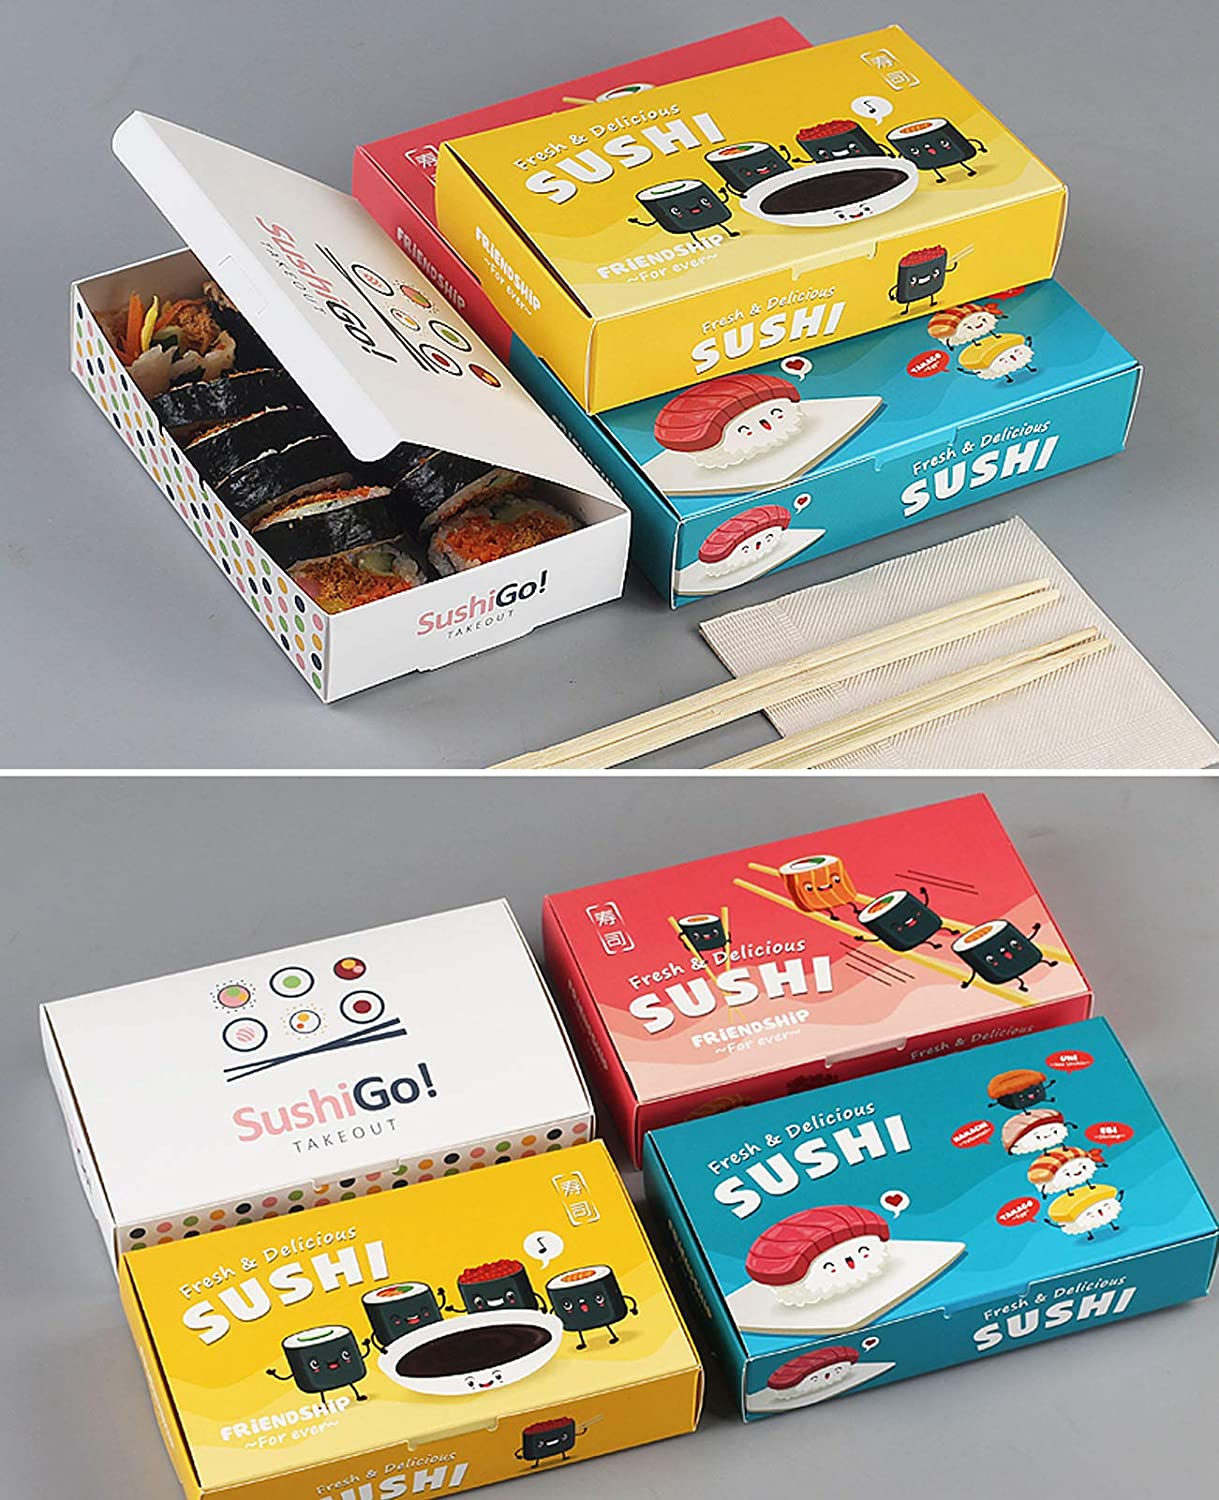 6.7 x 4 x 1.4 Inches D Hornet Park 100 Pcs Disposable Paper Lunch Boxes Japanese Style Sushi Take Out Boxes